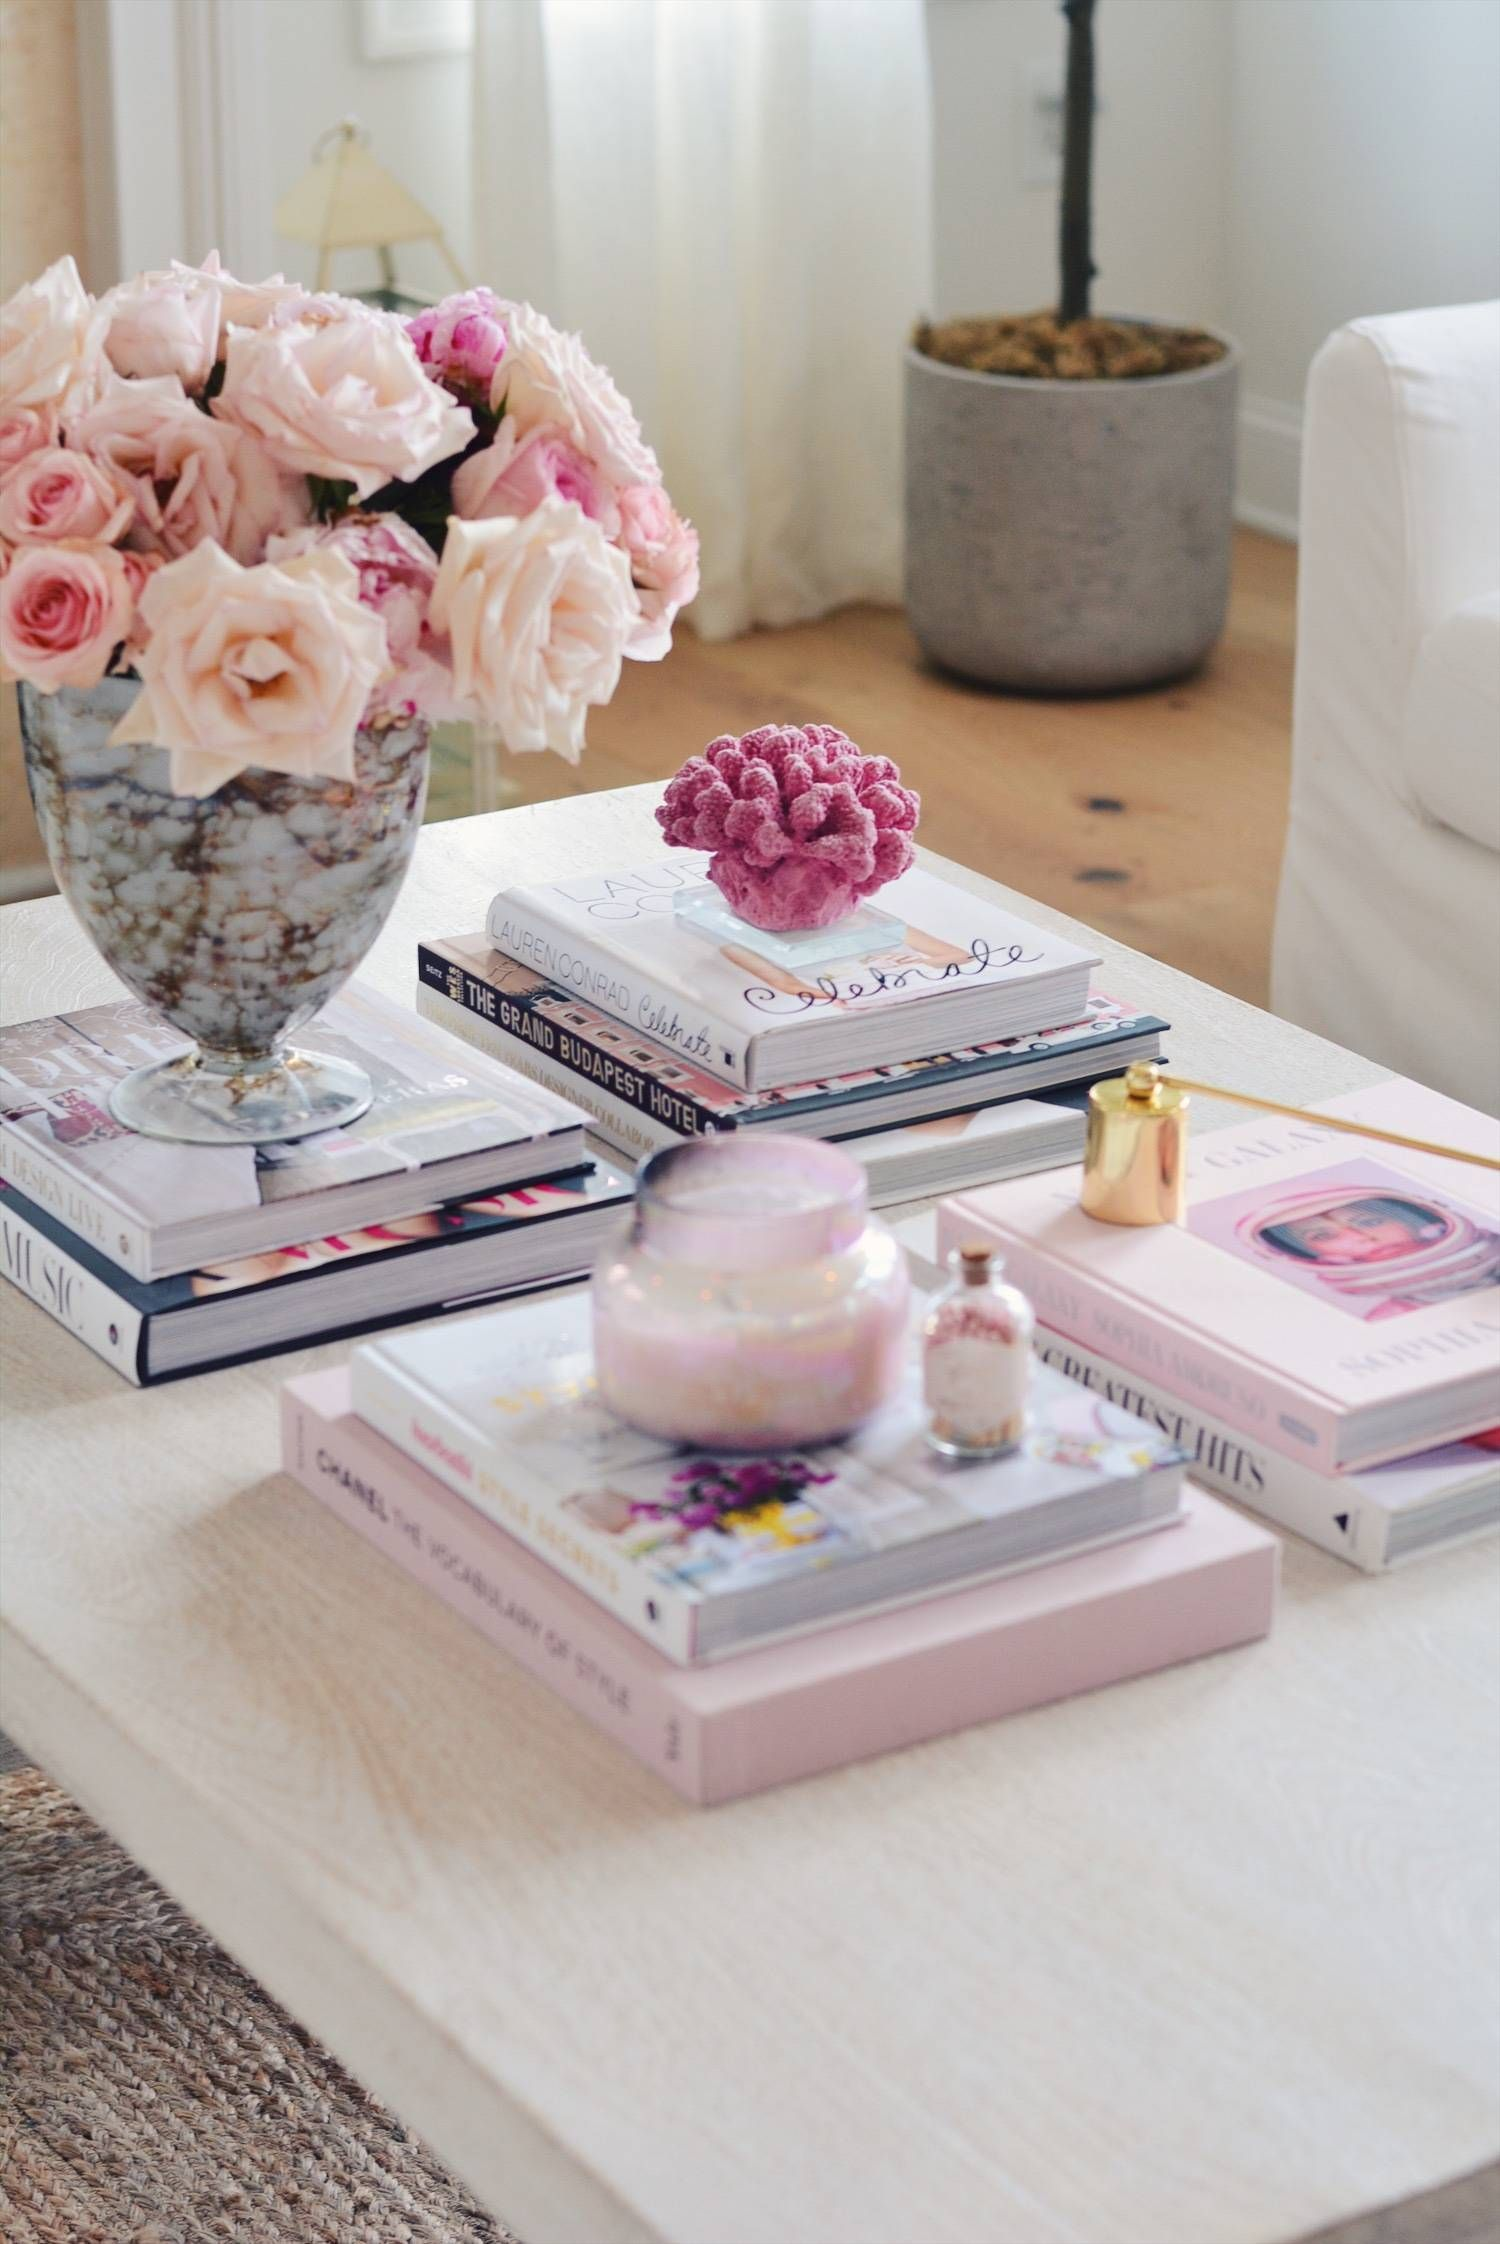 Romantic Valentine S Day Home Decor Ideas Home With Holliday Coffee Table Books Decor Decorating Coffee Tables Coffee Table Books [ 2244 x 1500 Pixel ]